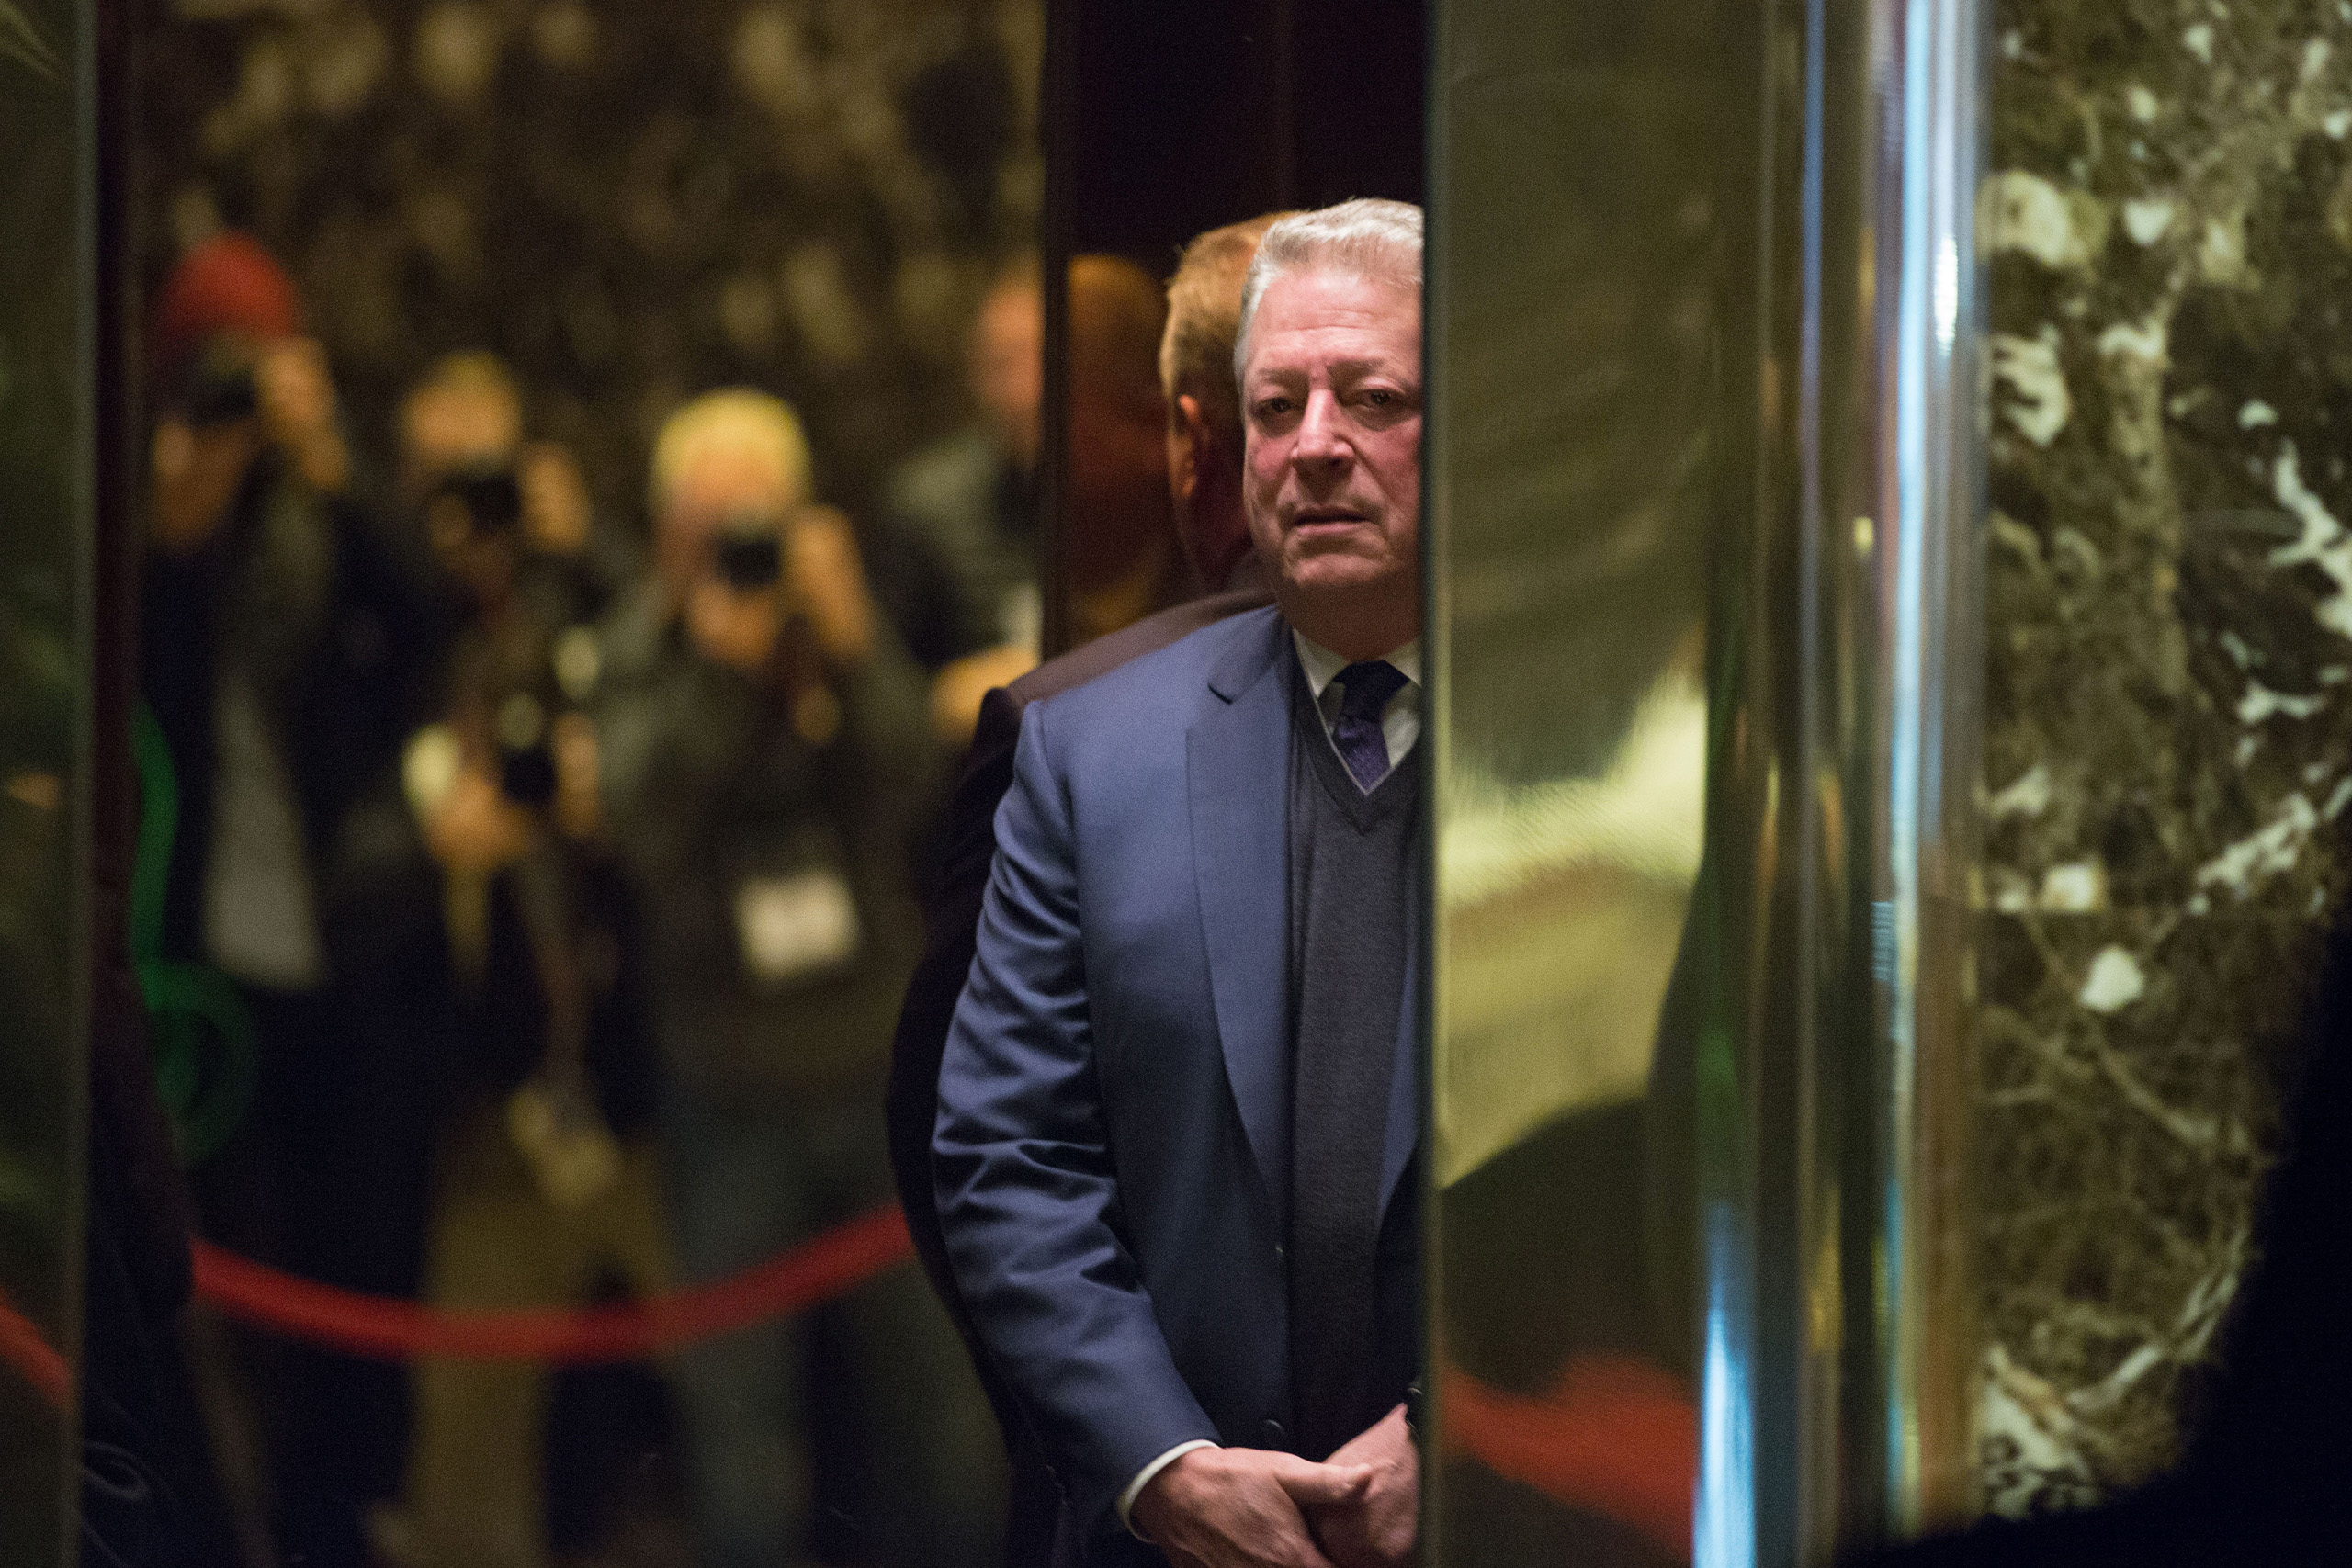 Former Vice President Al Gore arrives at Trump Tower on Dec. 5, 2016.